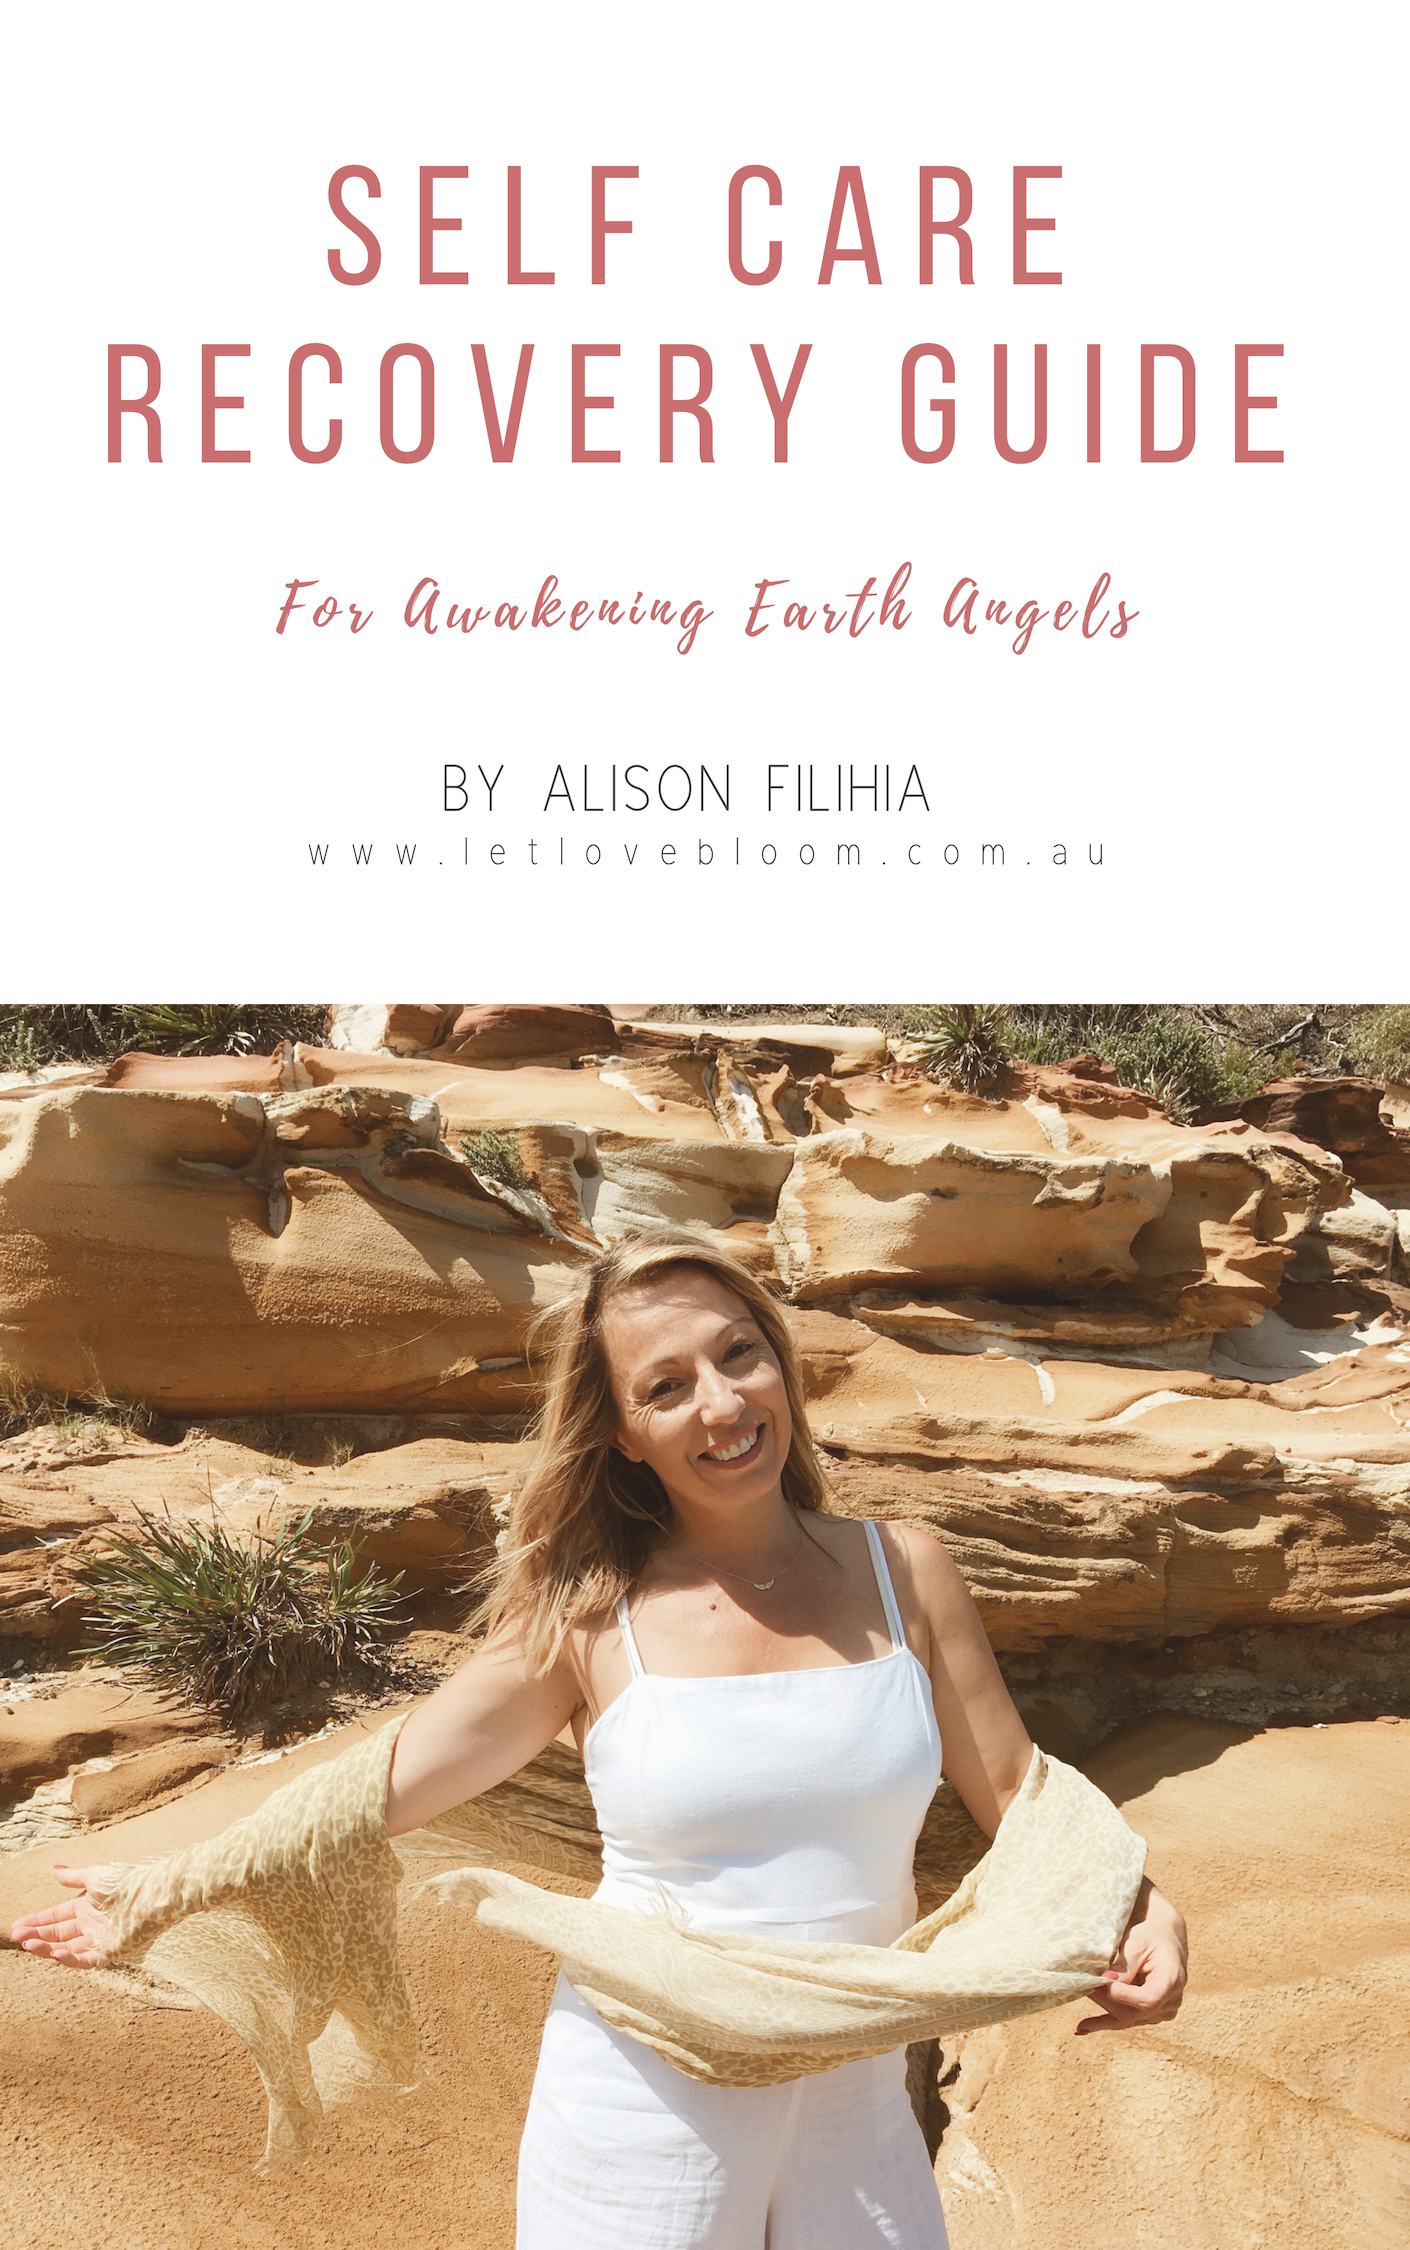 Self care Recovery Guide (1) copy.png